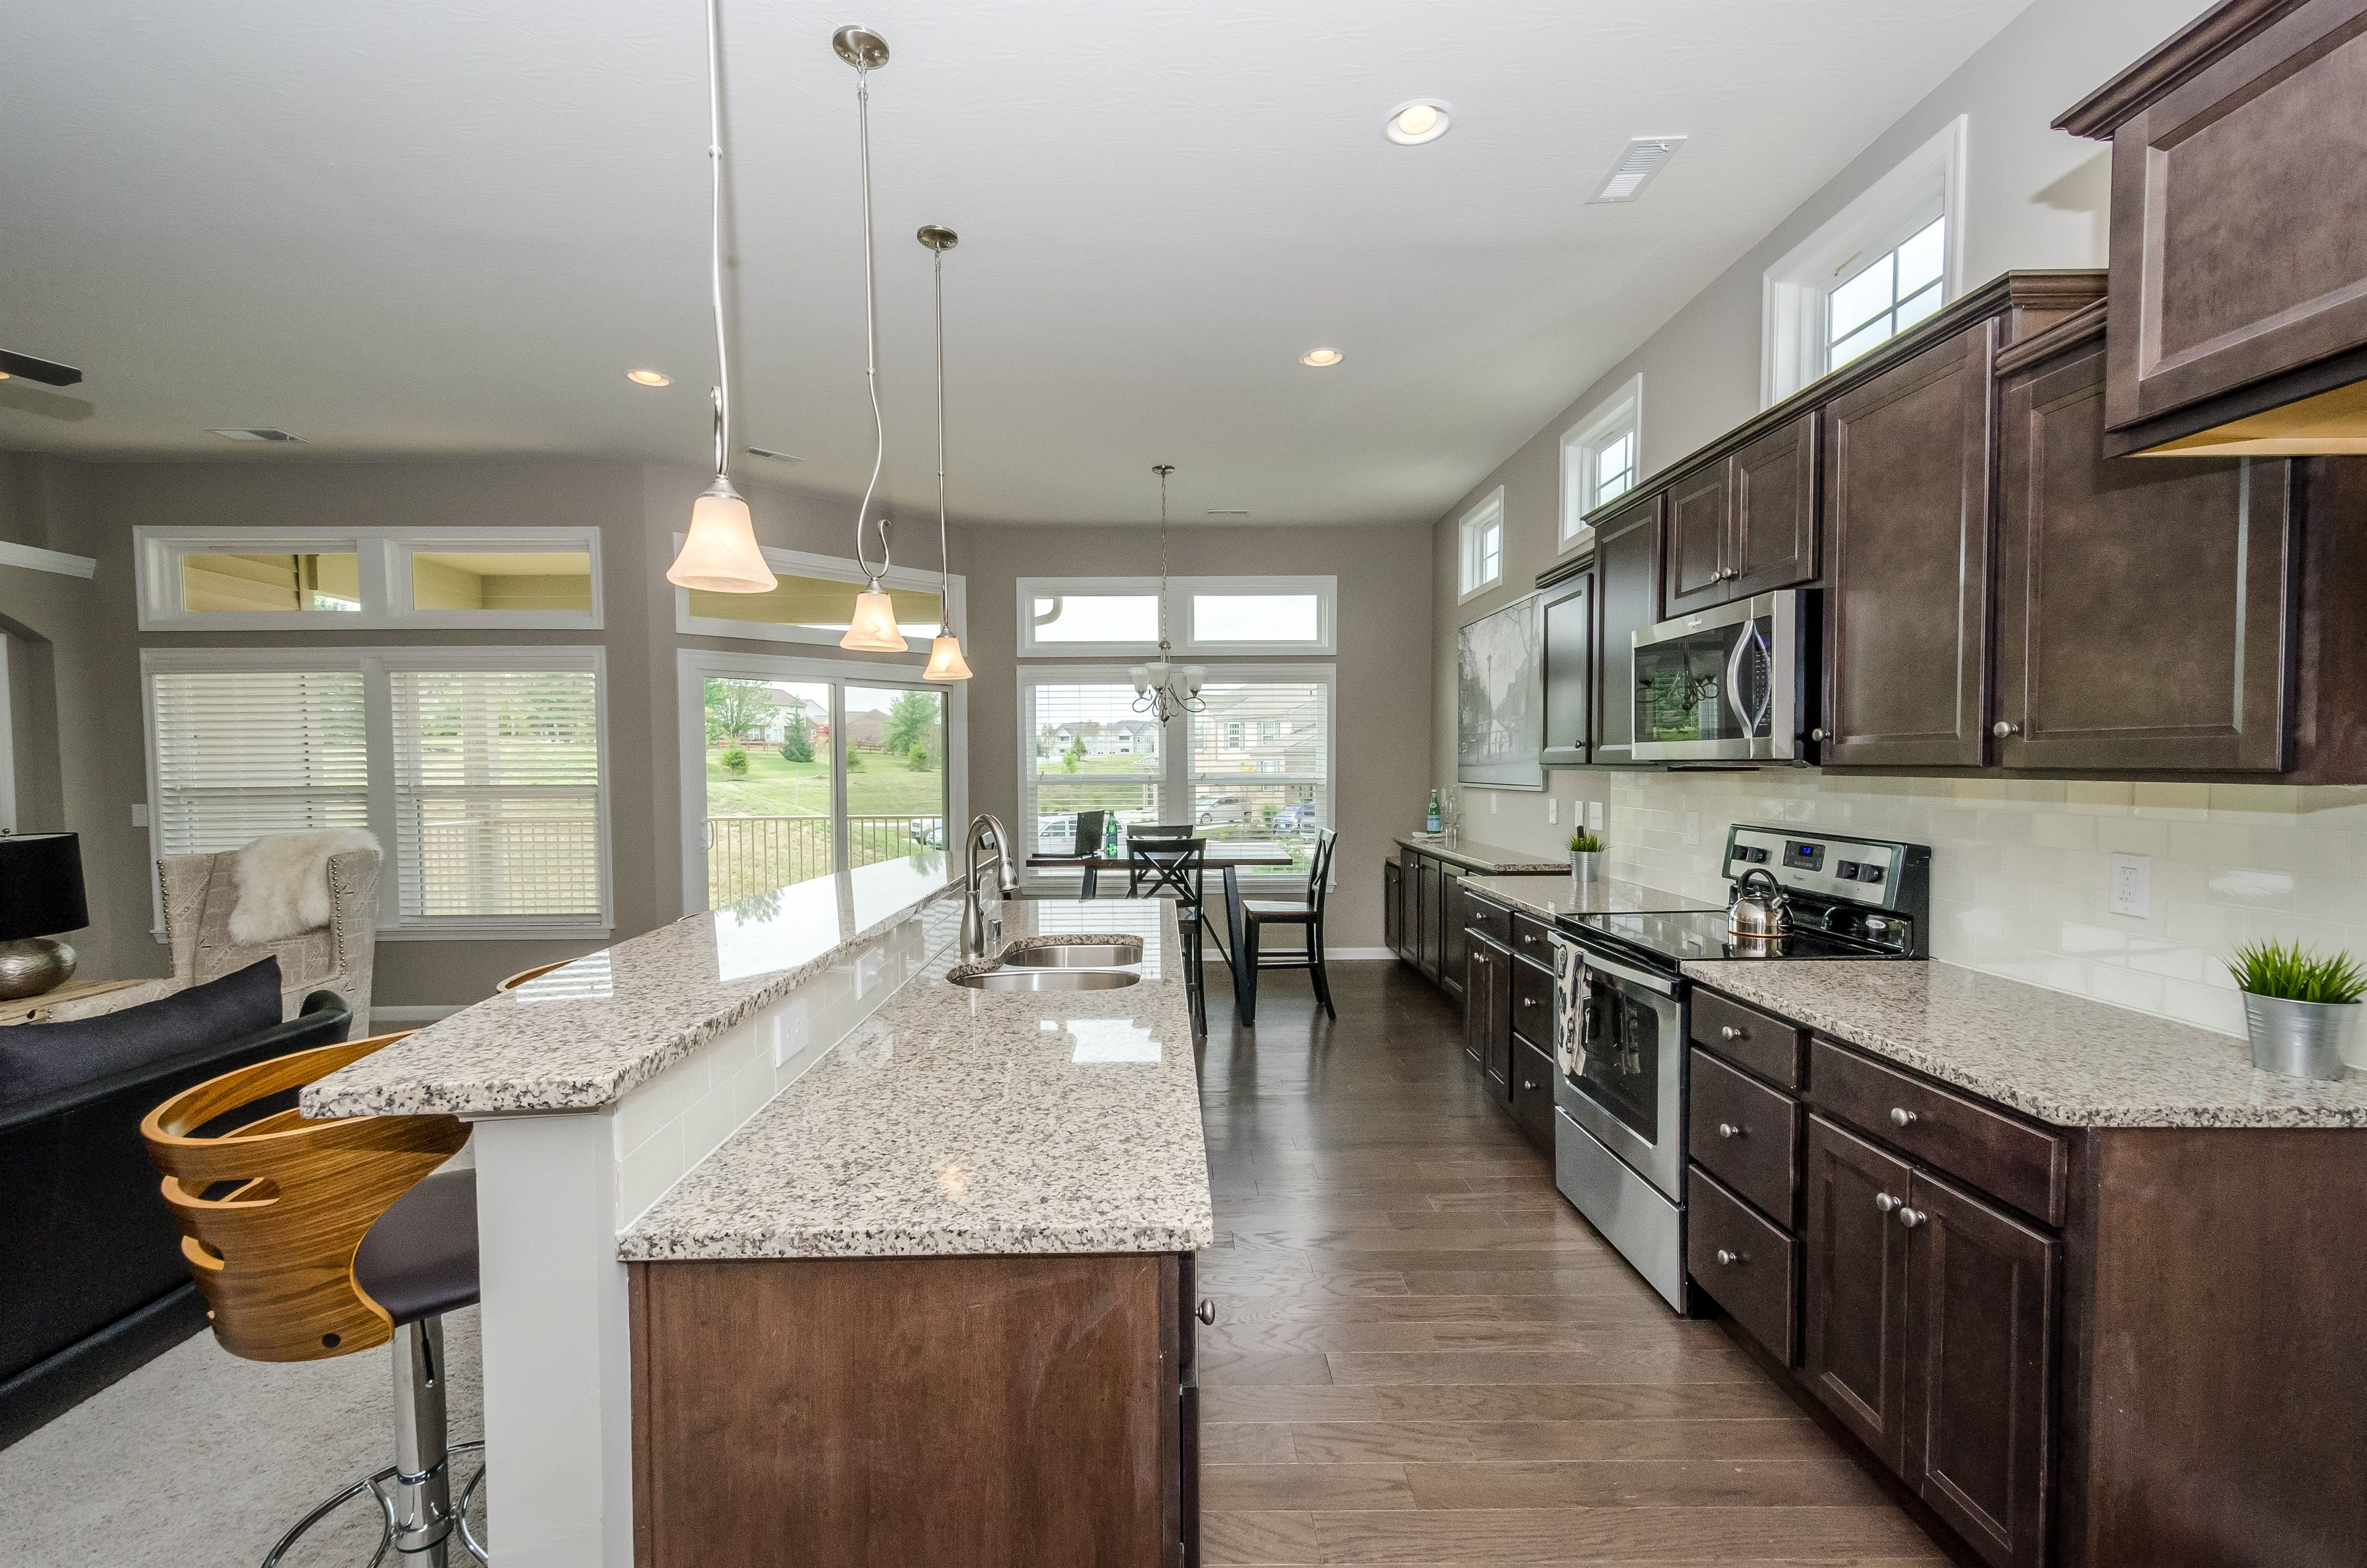 Kitchen featured in the Northport II By Fischer Homes  in Cincinnati, OH